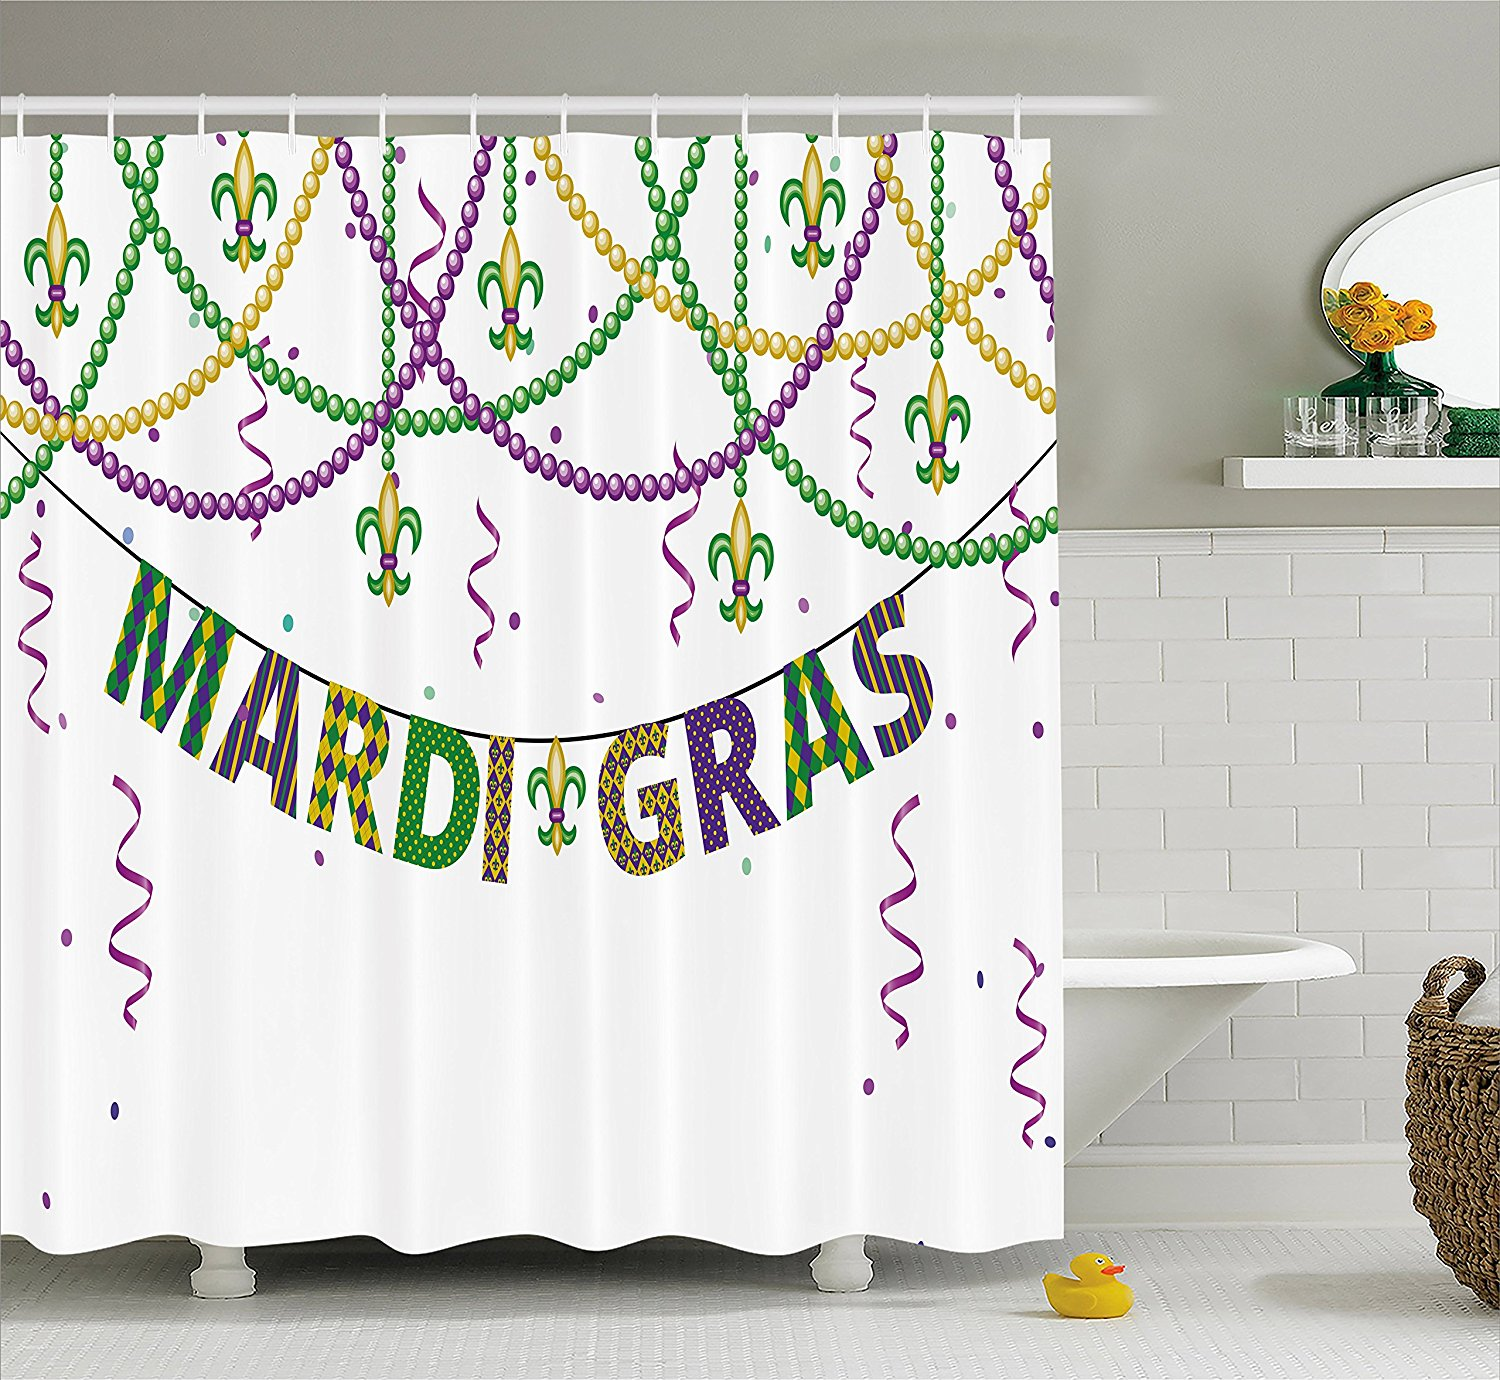 Mardi Gras Shower Curtain Festive Decorations With Fleur De Lis Icons Hanging From Colorful Beads Purple Green Yellow